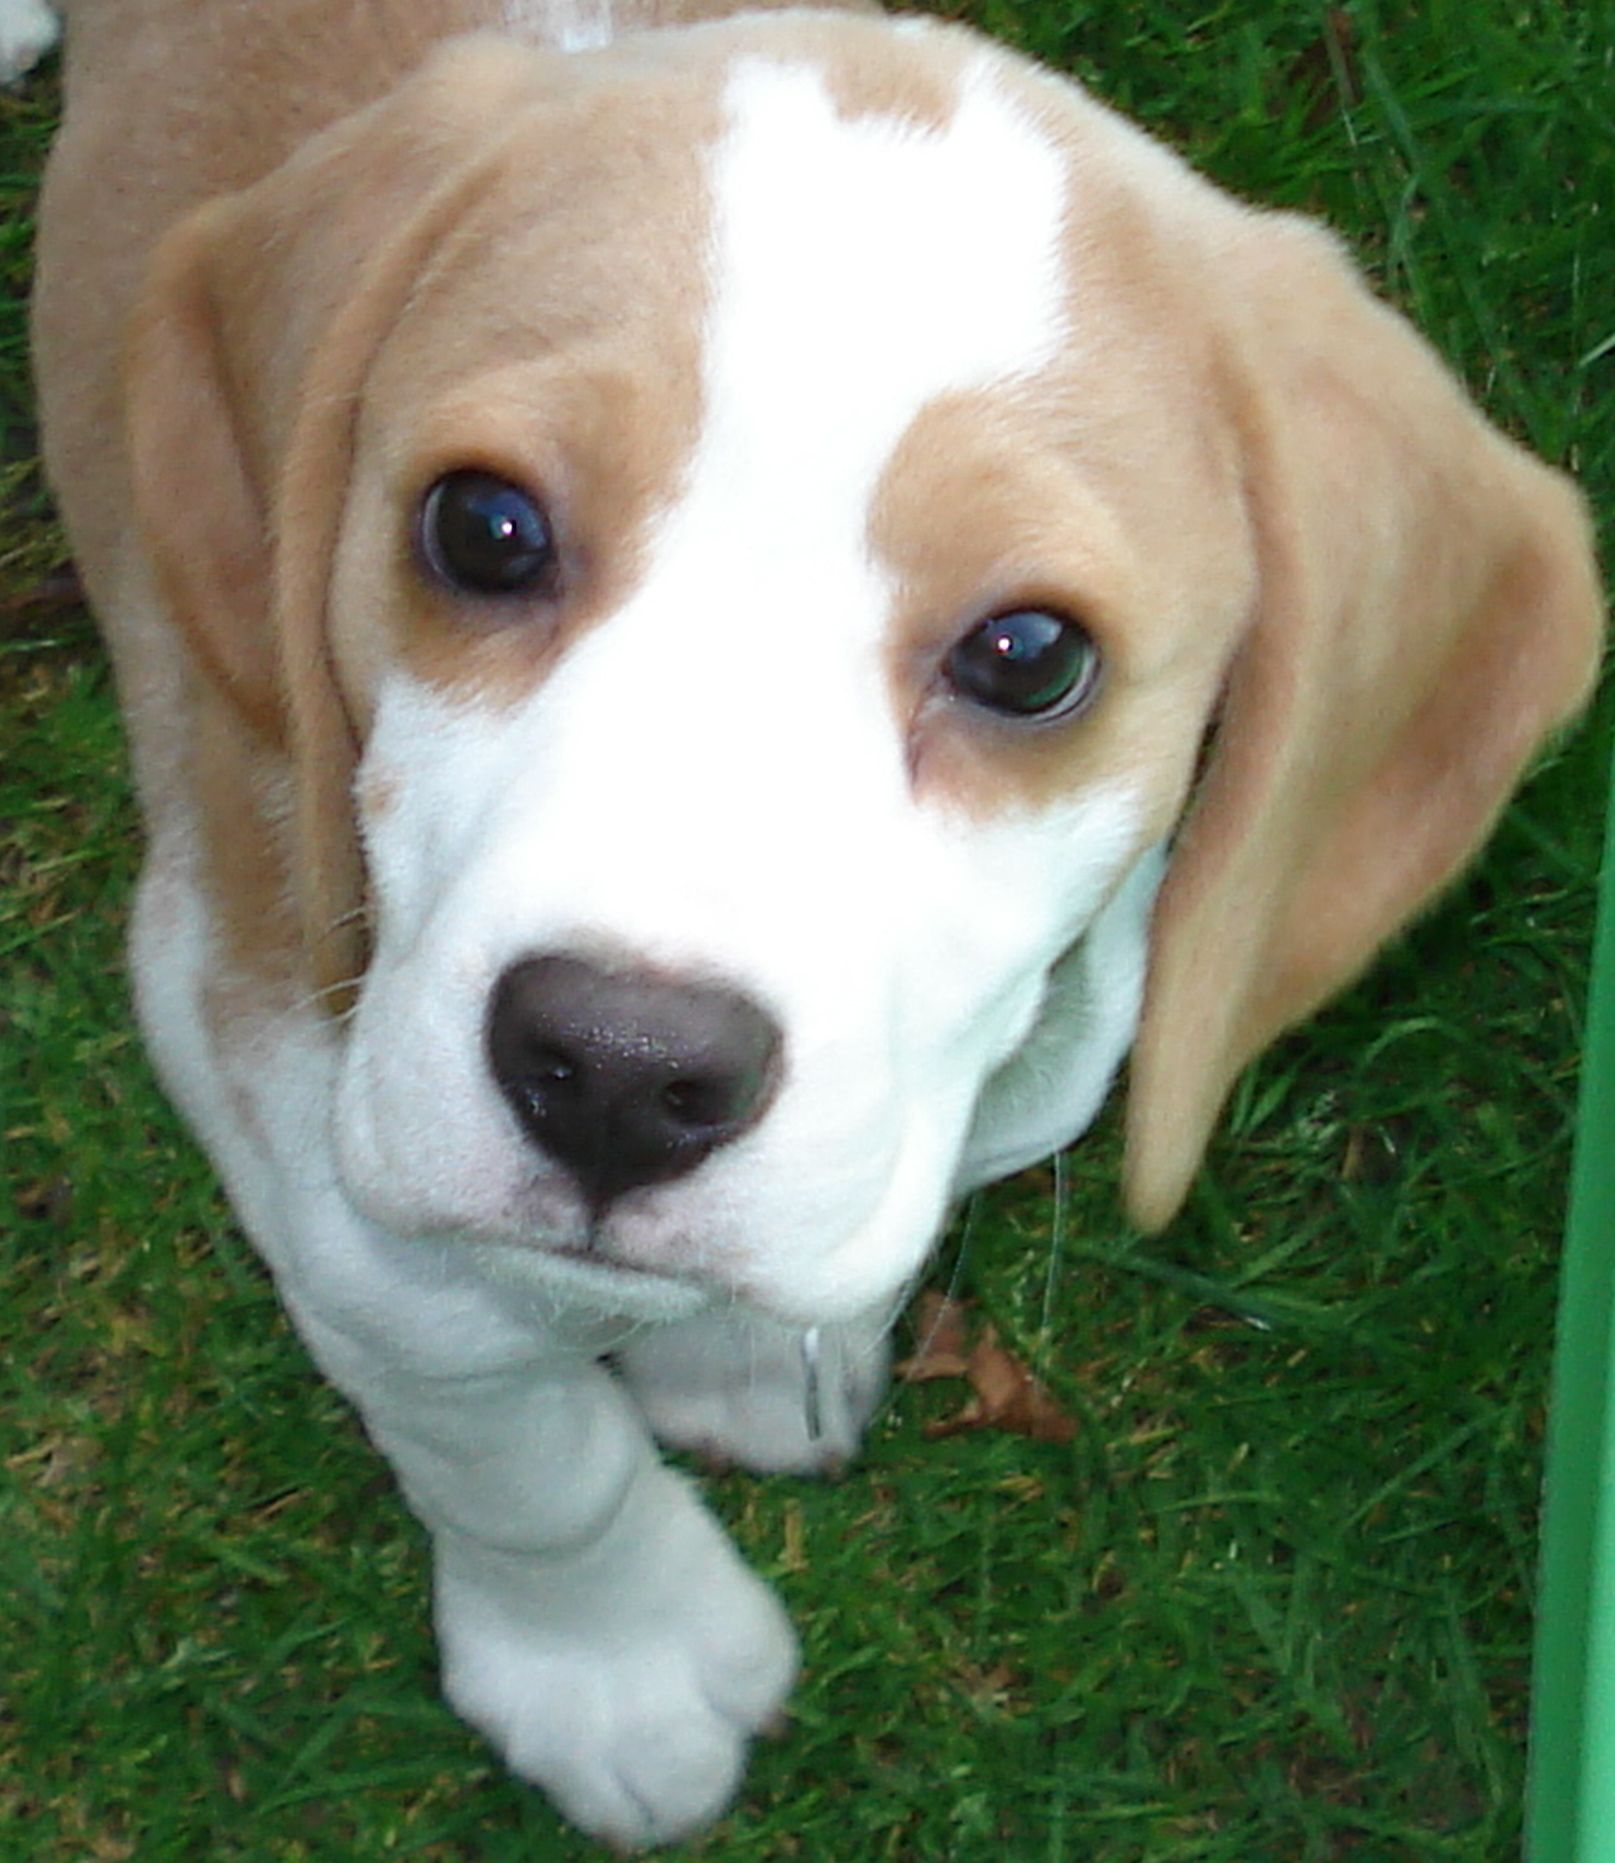 The Beagle Is A Breed Of Hunting Dog That Has Been A Popular Human Companion For Centuries The Dog Is One Of The Beagle Puppy Lemon Beagle Puppy Lemon Beagle